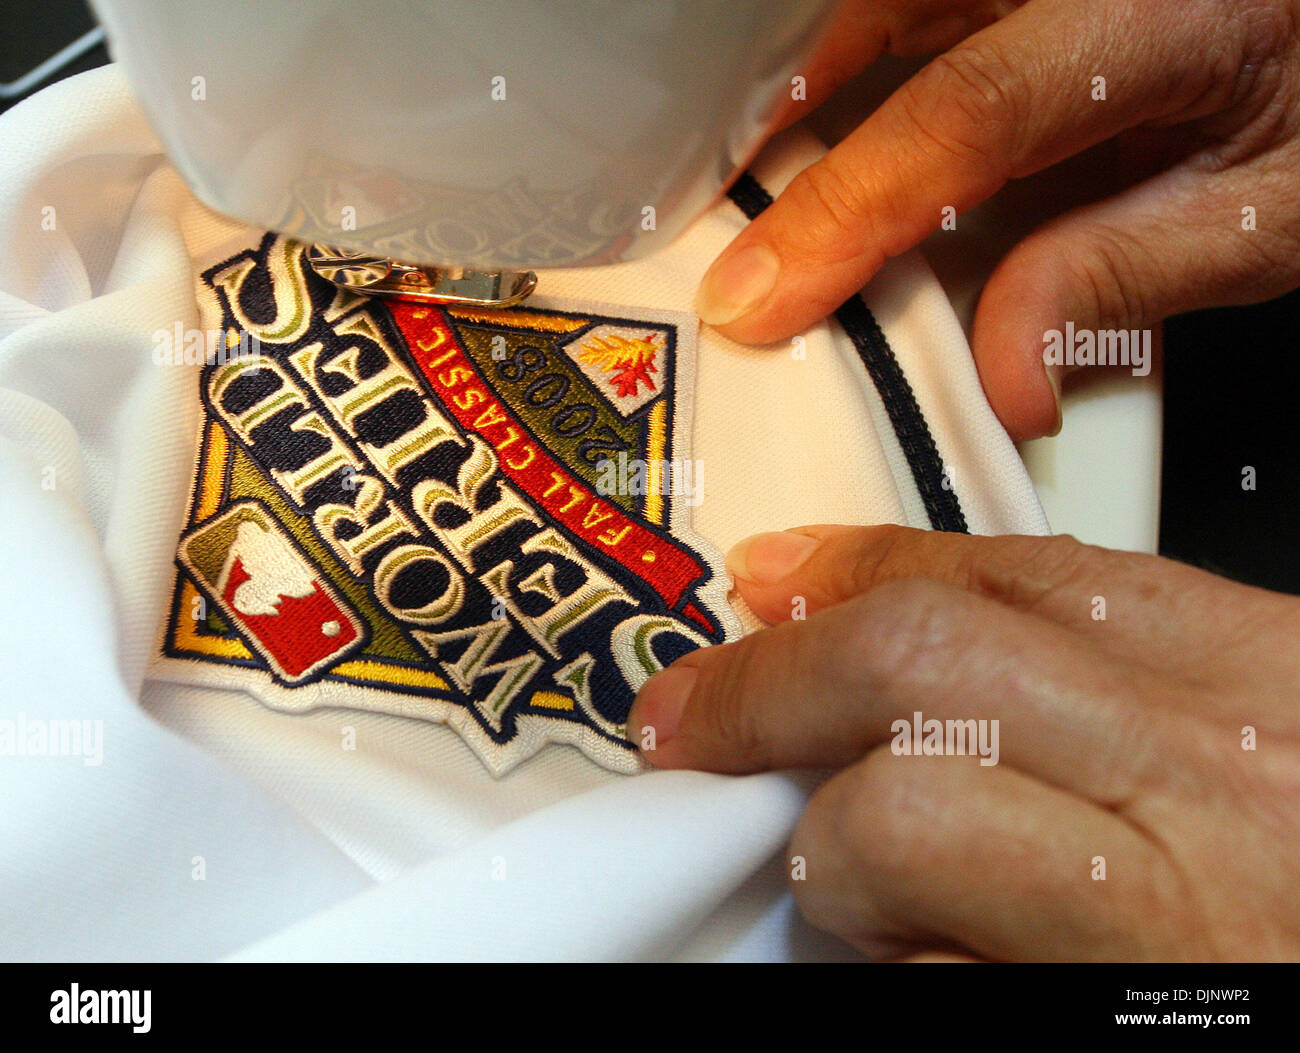 SP_296227_KEEL_RAYS (10/20/2008 ST. PETERSBURG) 2. A World Series patch is sewn on Evan Langoria's uniform by Diane Ellerman, (CQ), of St. Petersburg, who is the Rays seamstress. (Credit Image: © St. Petersburg Times/ZUMA Press) - Stock Image